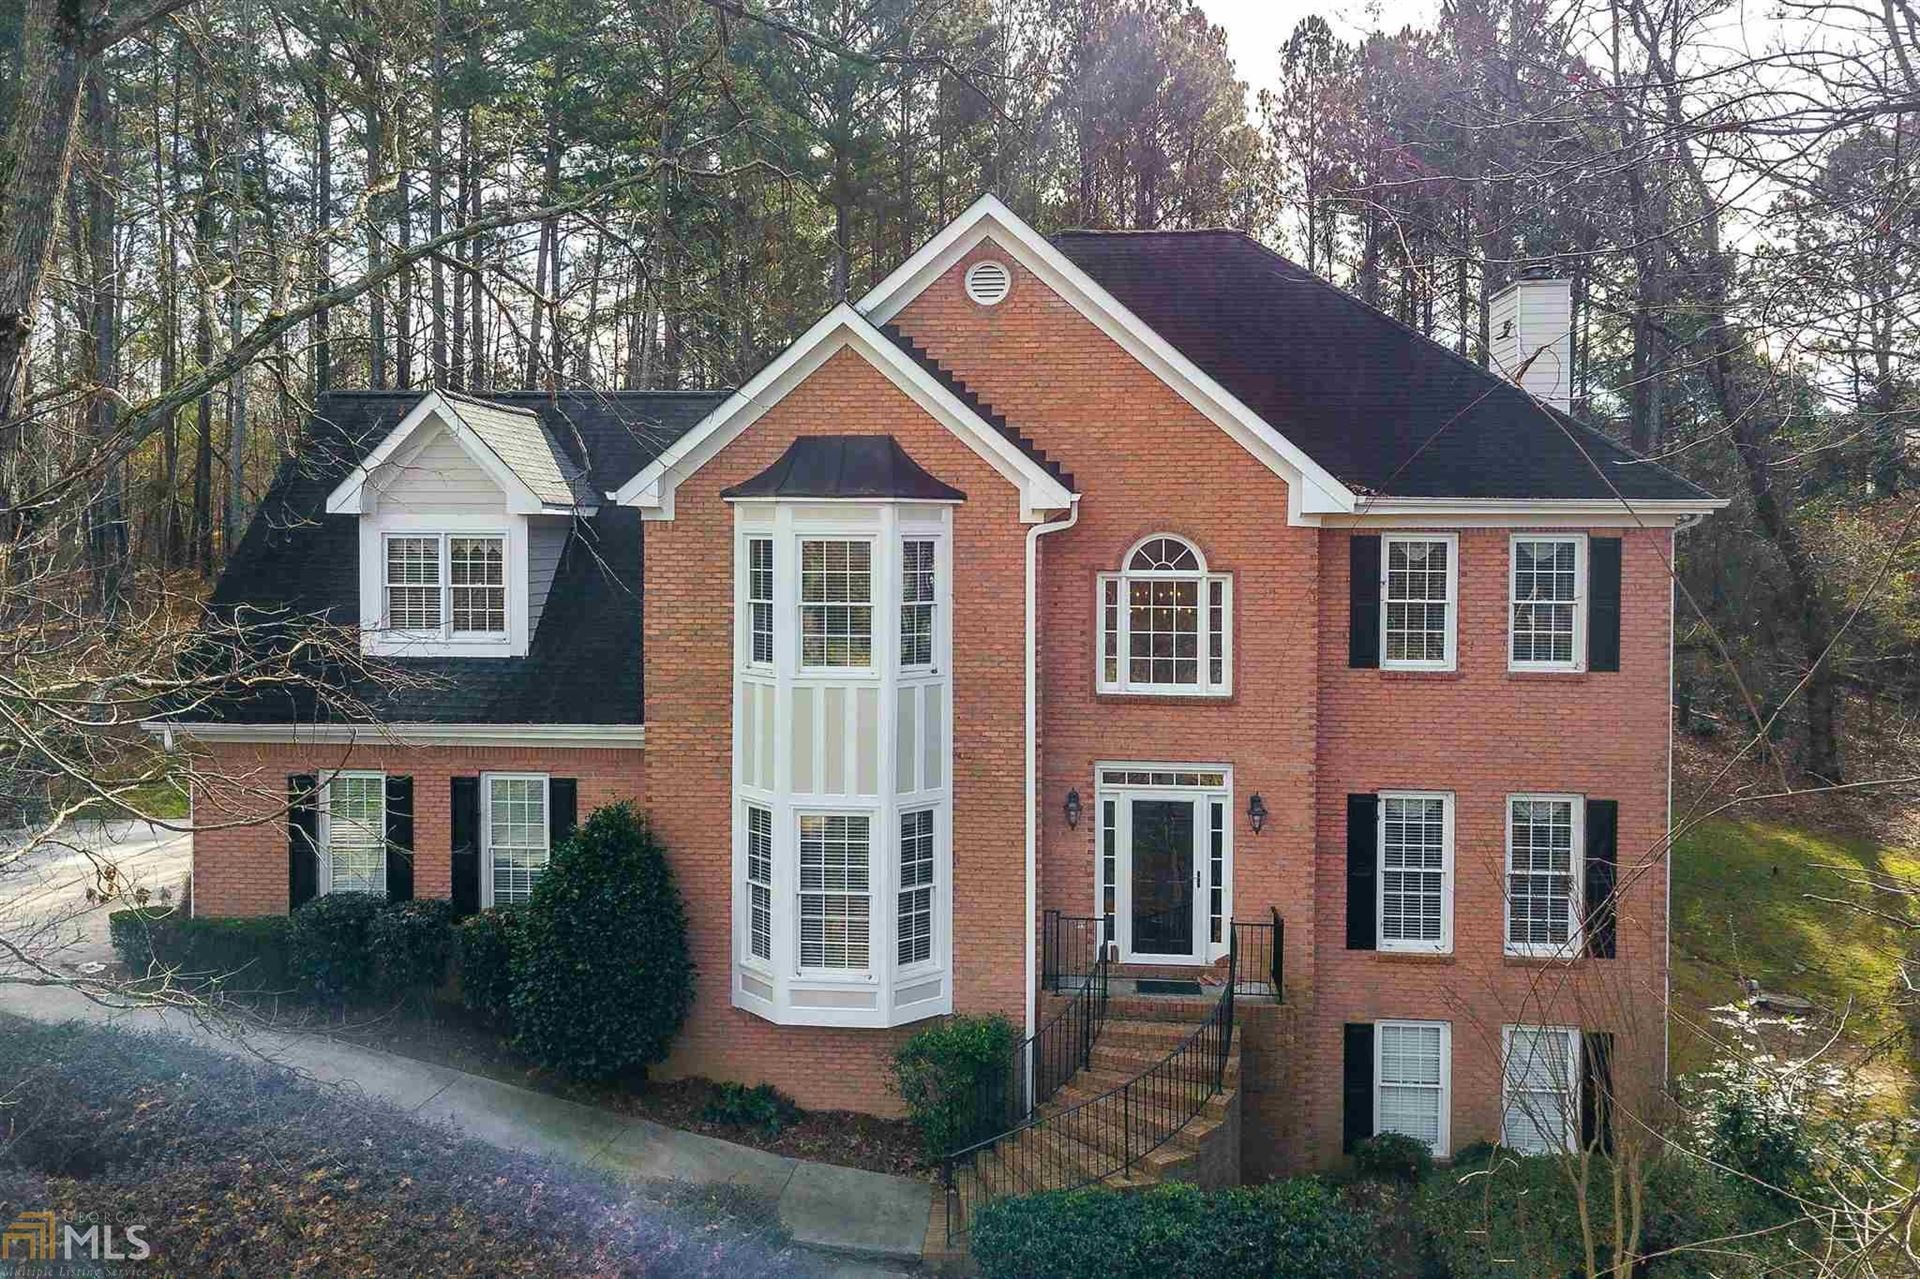 1810 Gleneden Ct, Grayson, GA 30017 - MLS#: 8910967